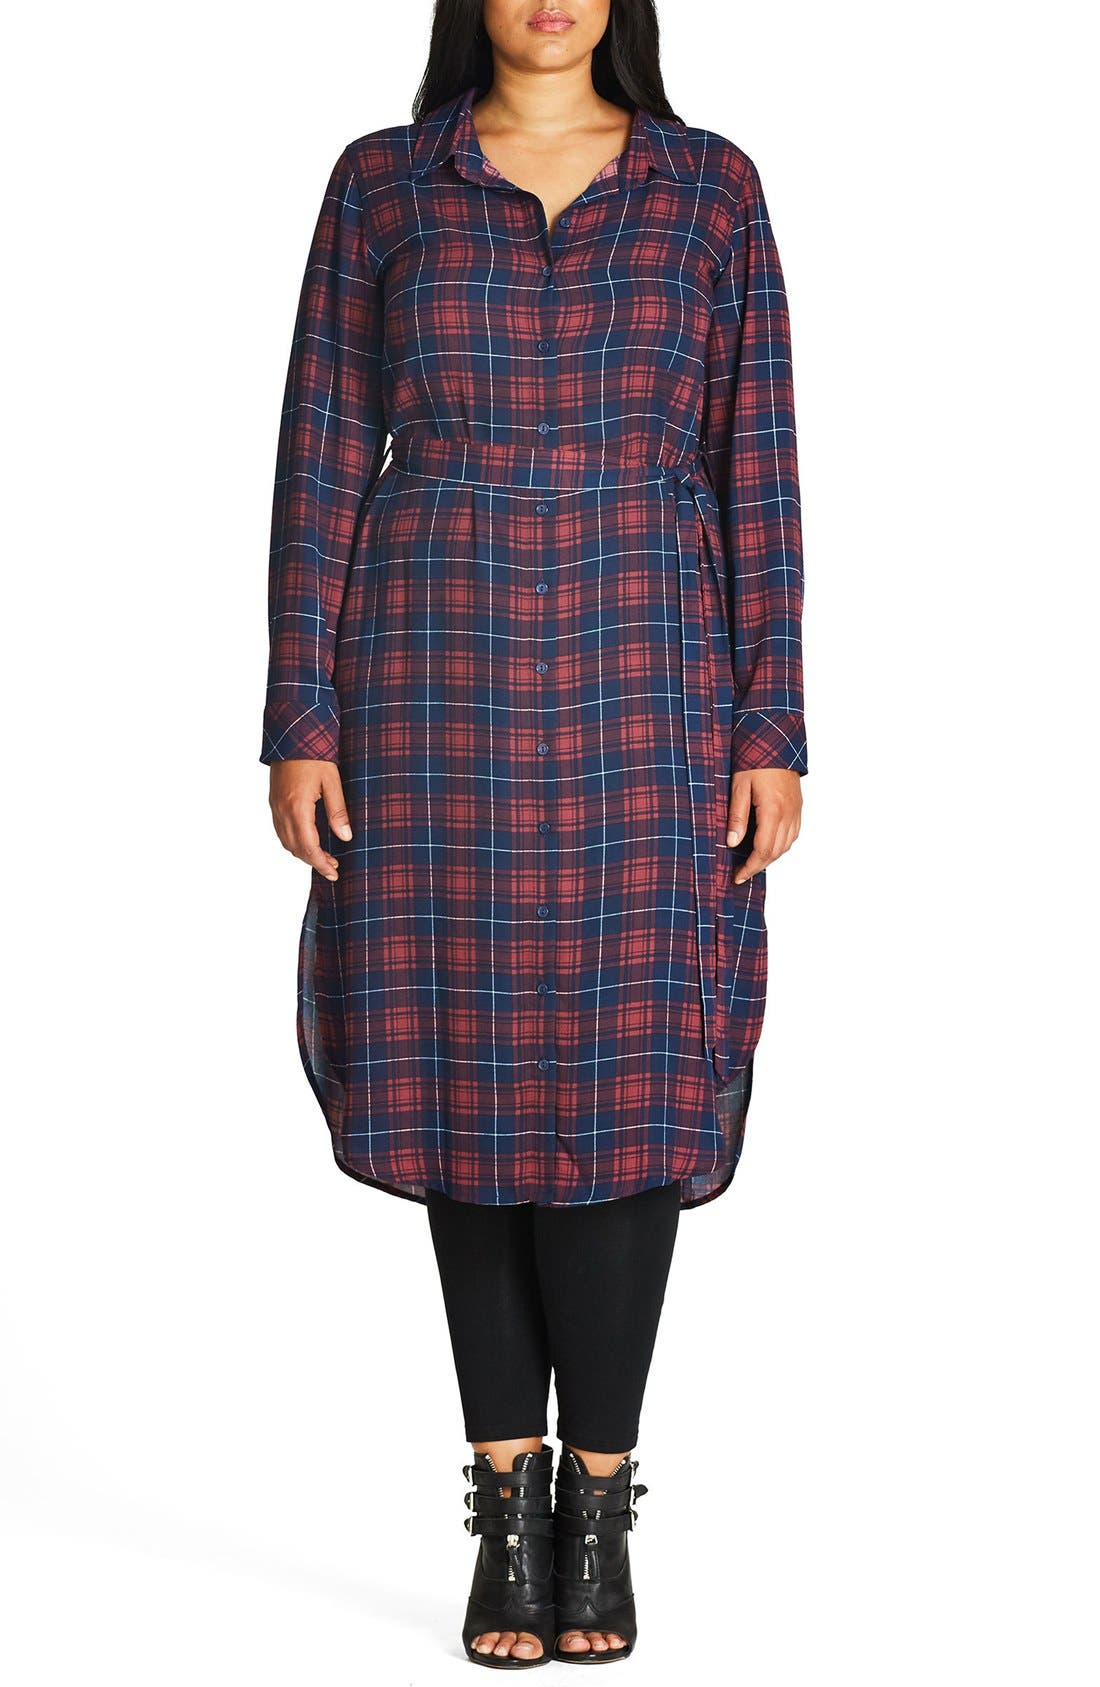 CITY CHIC Check Longline Shirt